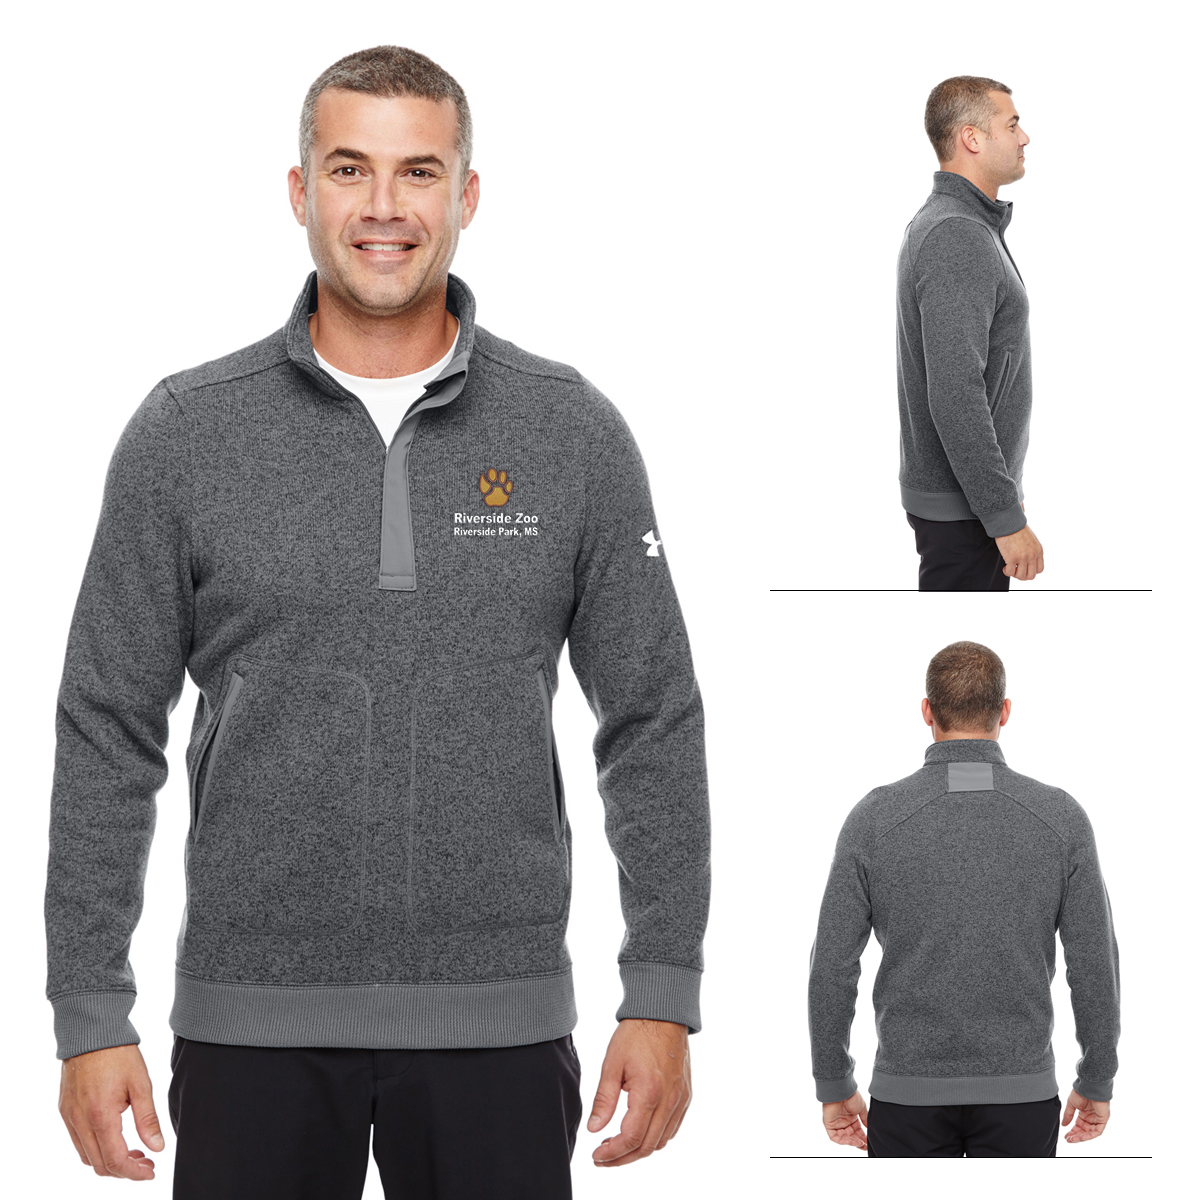 a797ab0f8d Promotional Under Armour Men's Elevate 1/4 Zip Sweater | Customized ...